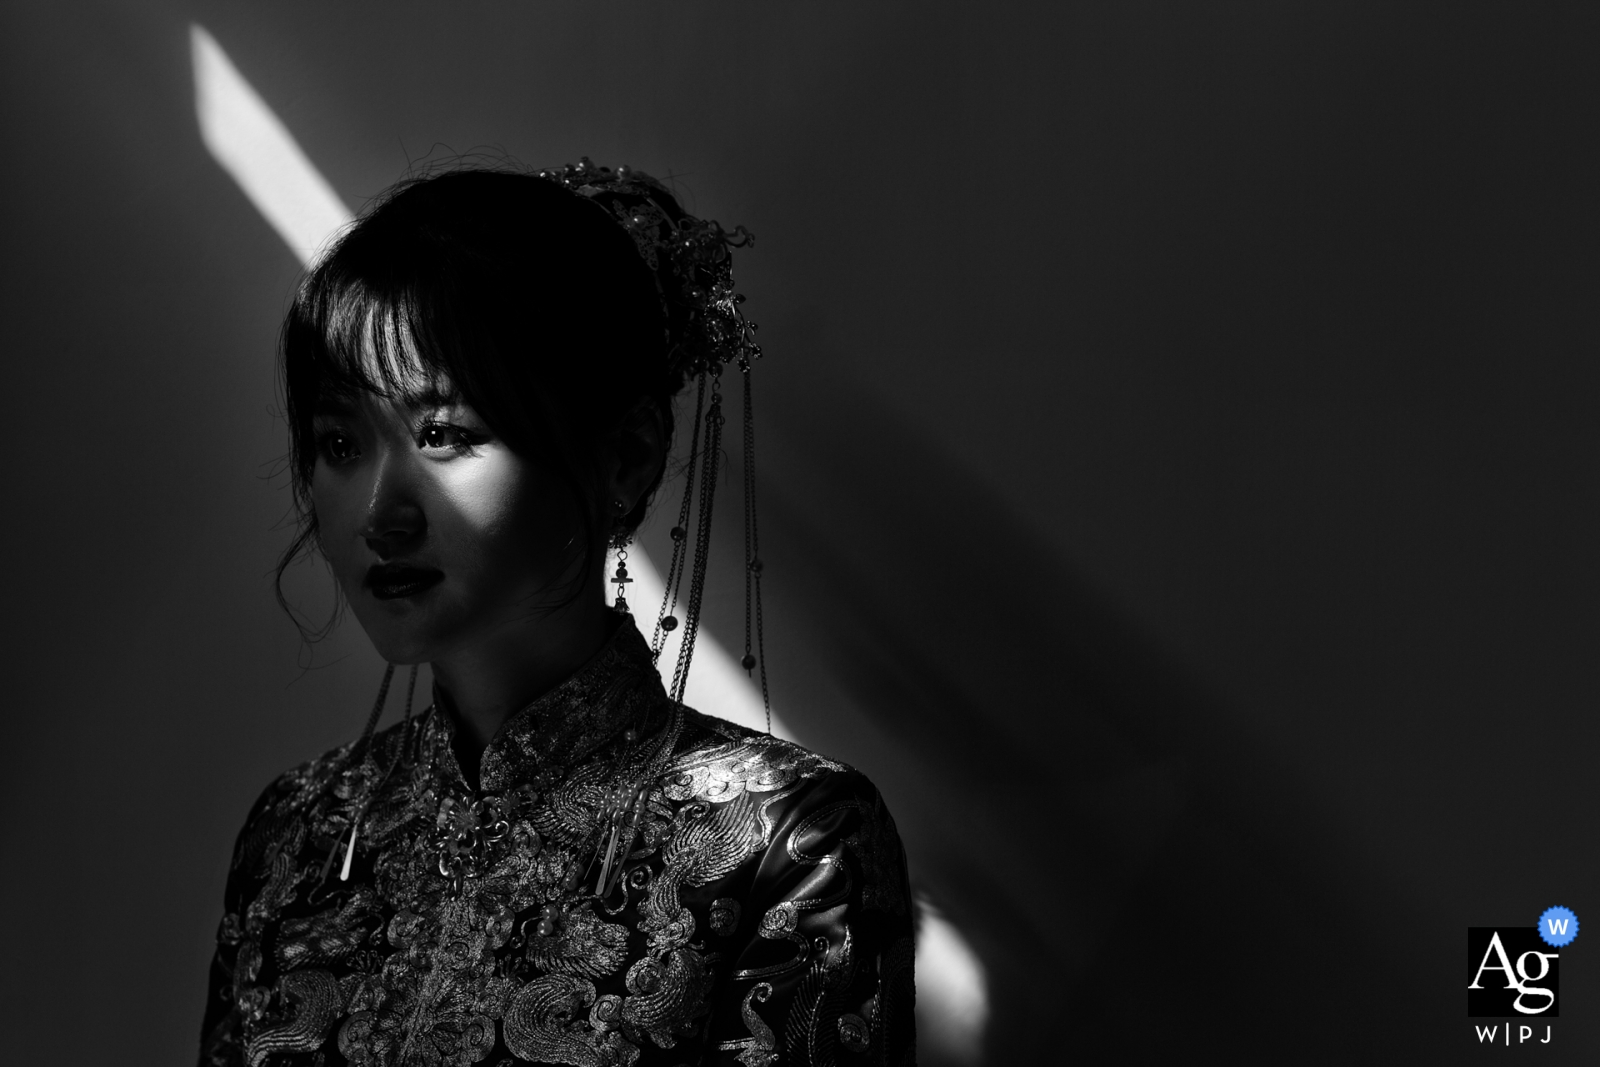 Fujian, China wedding photography | Wedding Day Portrait of the bride in black-and-white